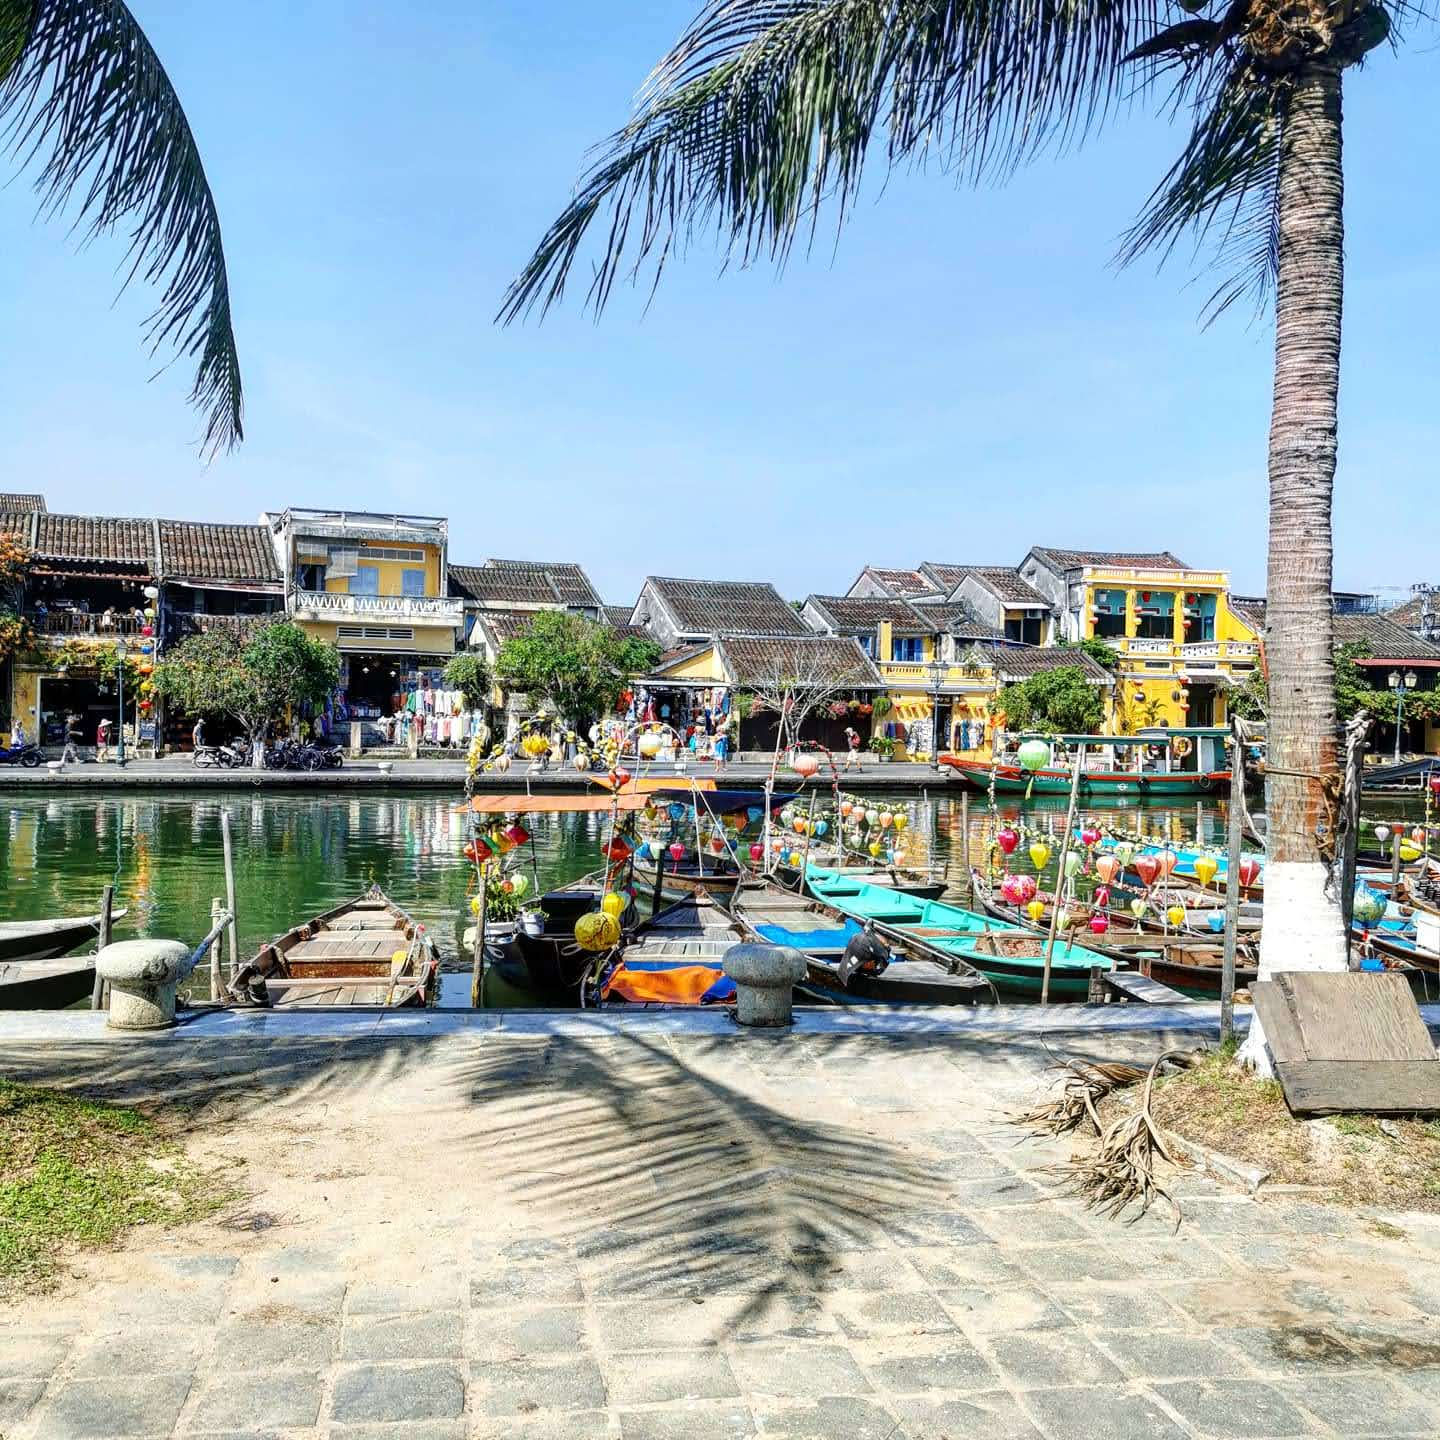 Thu Bon River in Hoi An in the day